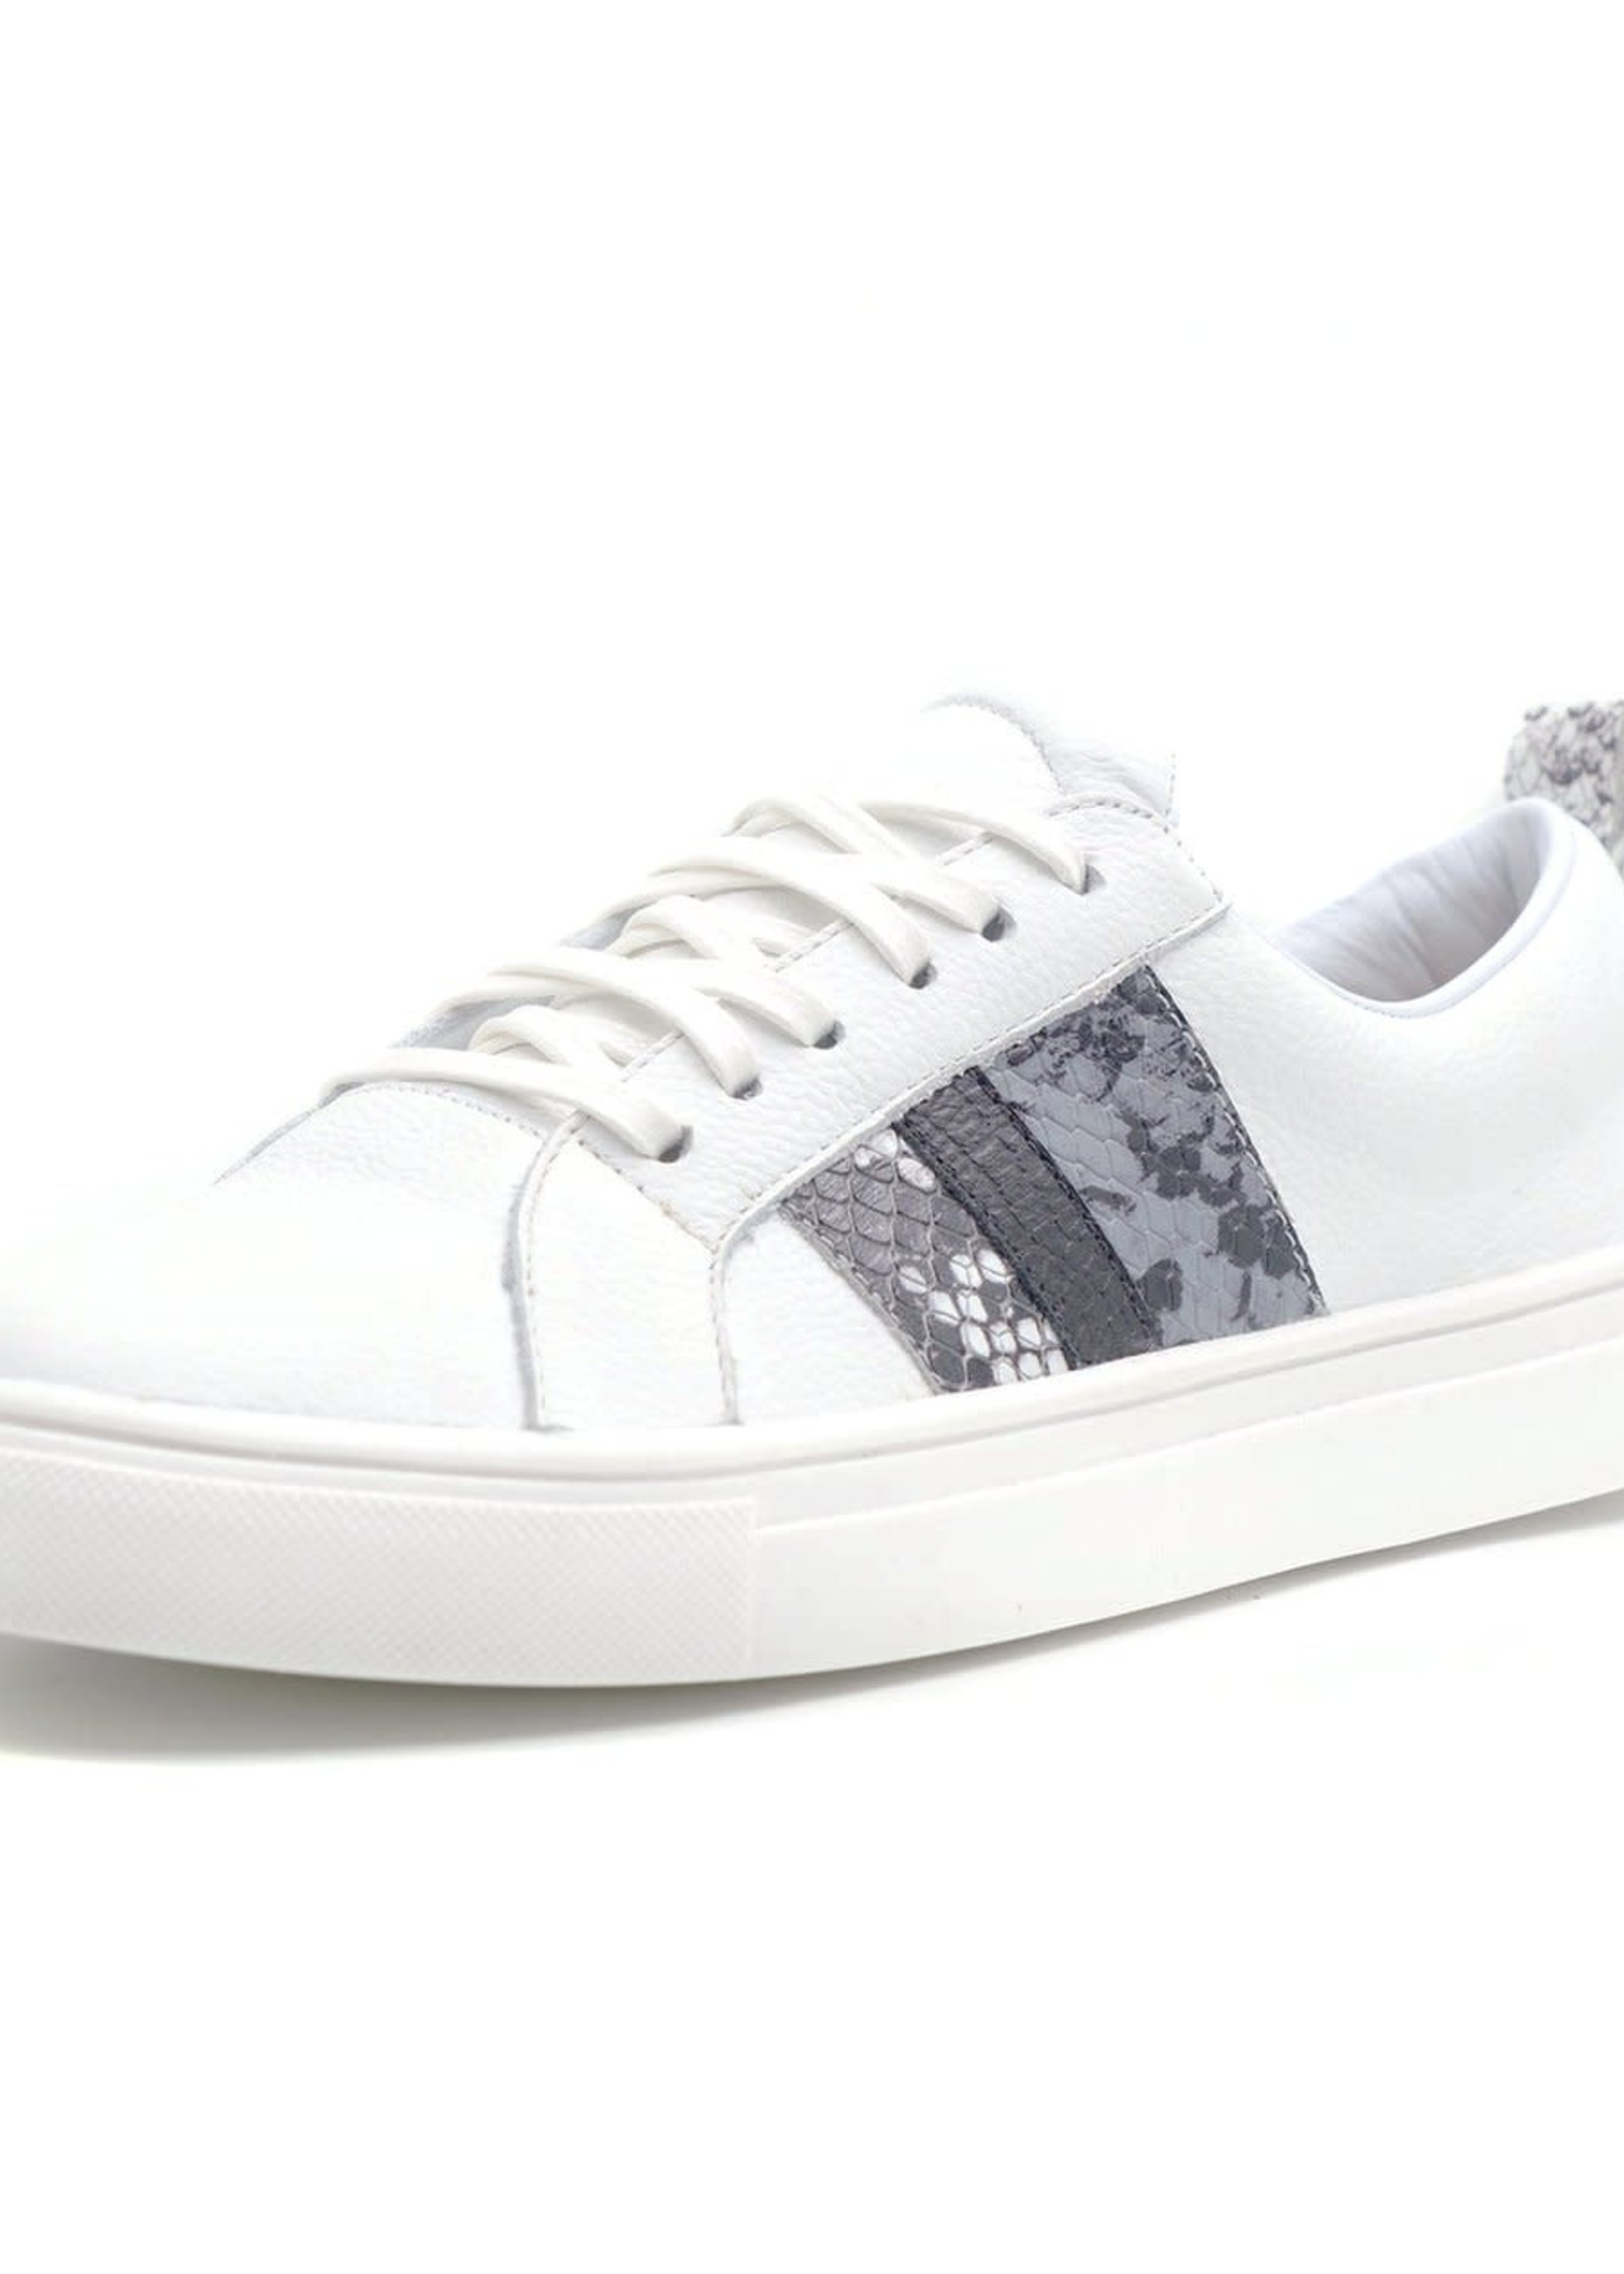 Elitaire Boutique Bristol Sneaker with Snakeskin